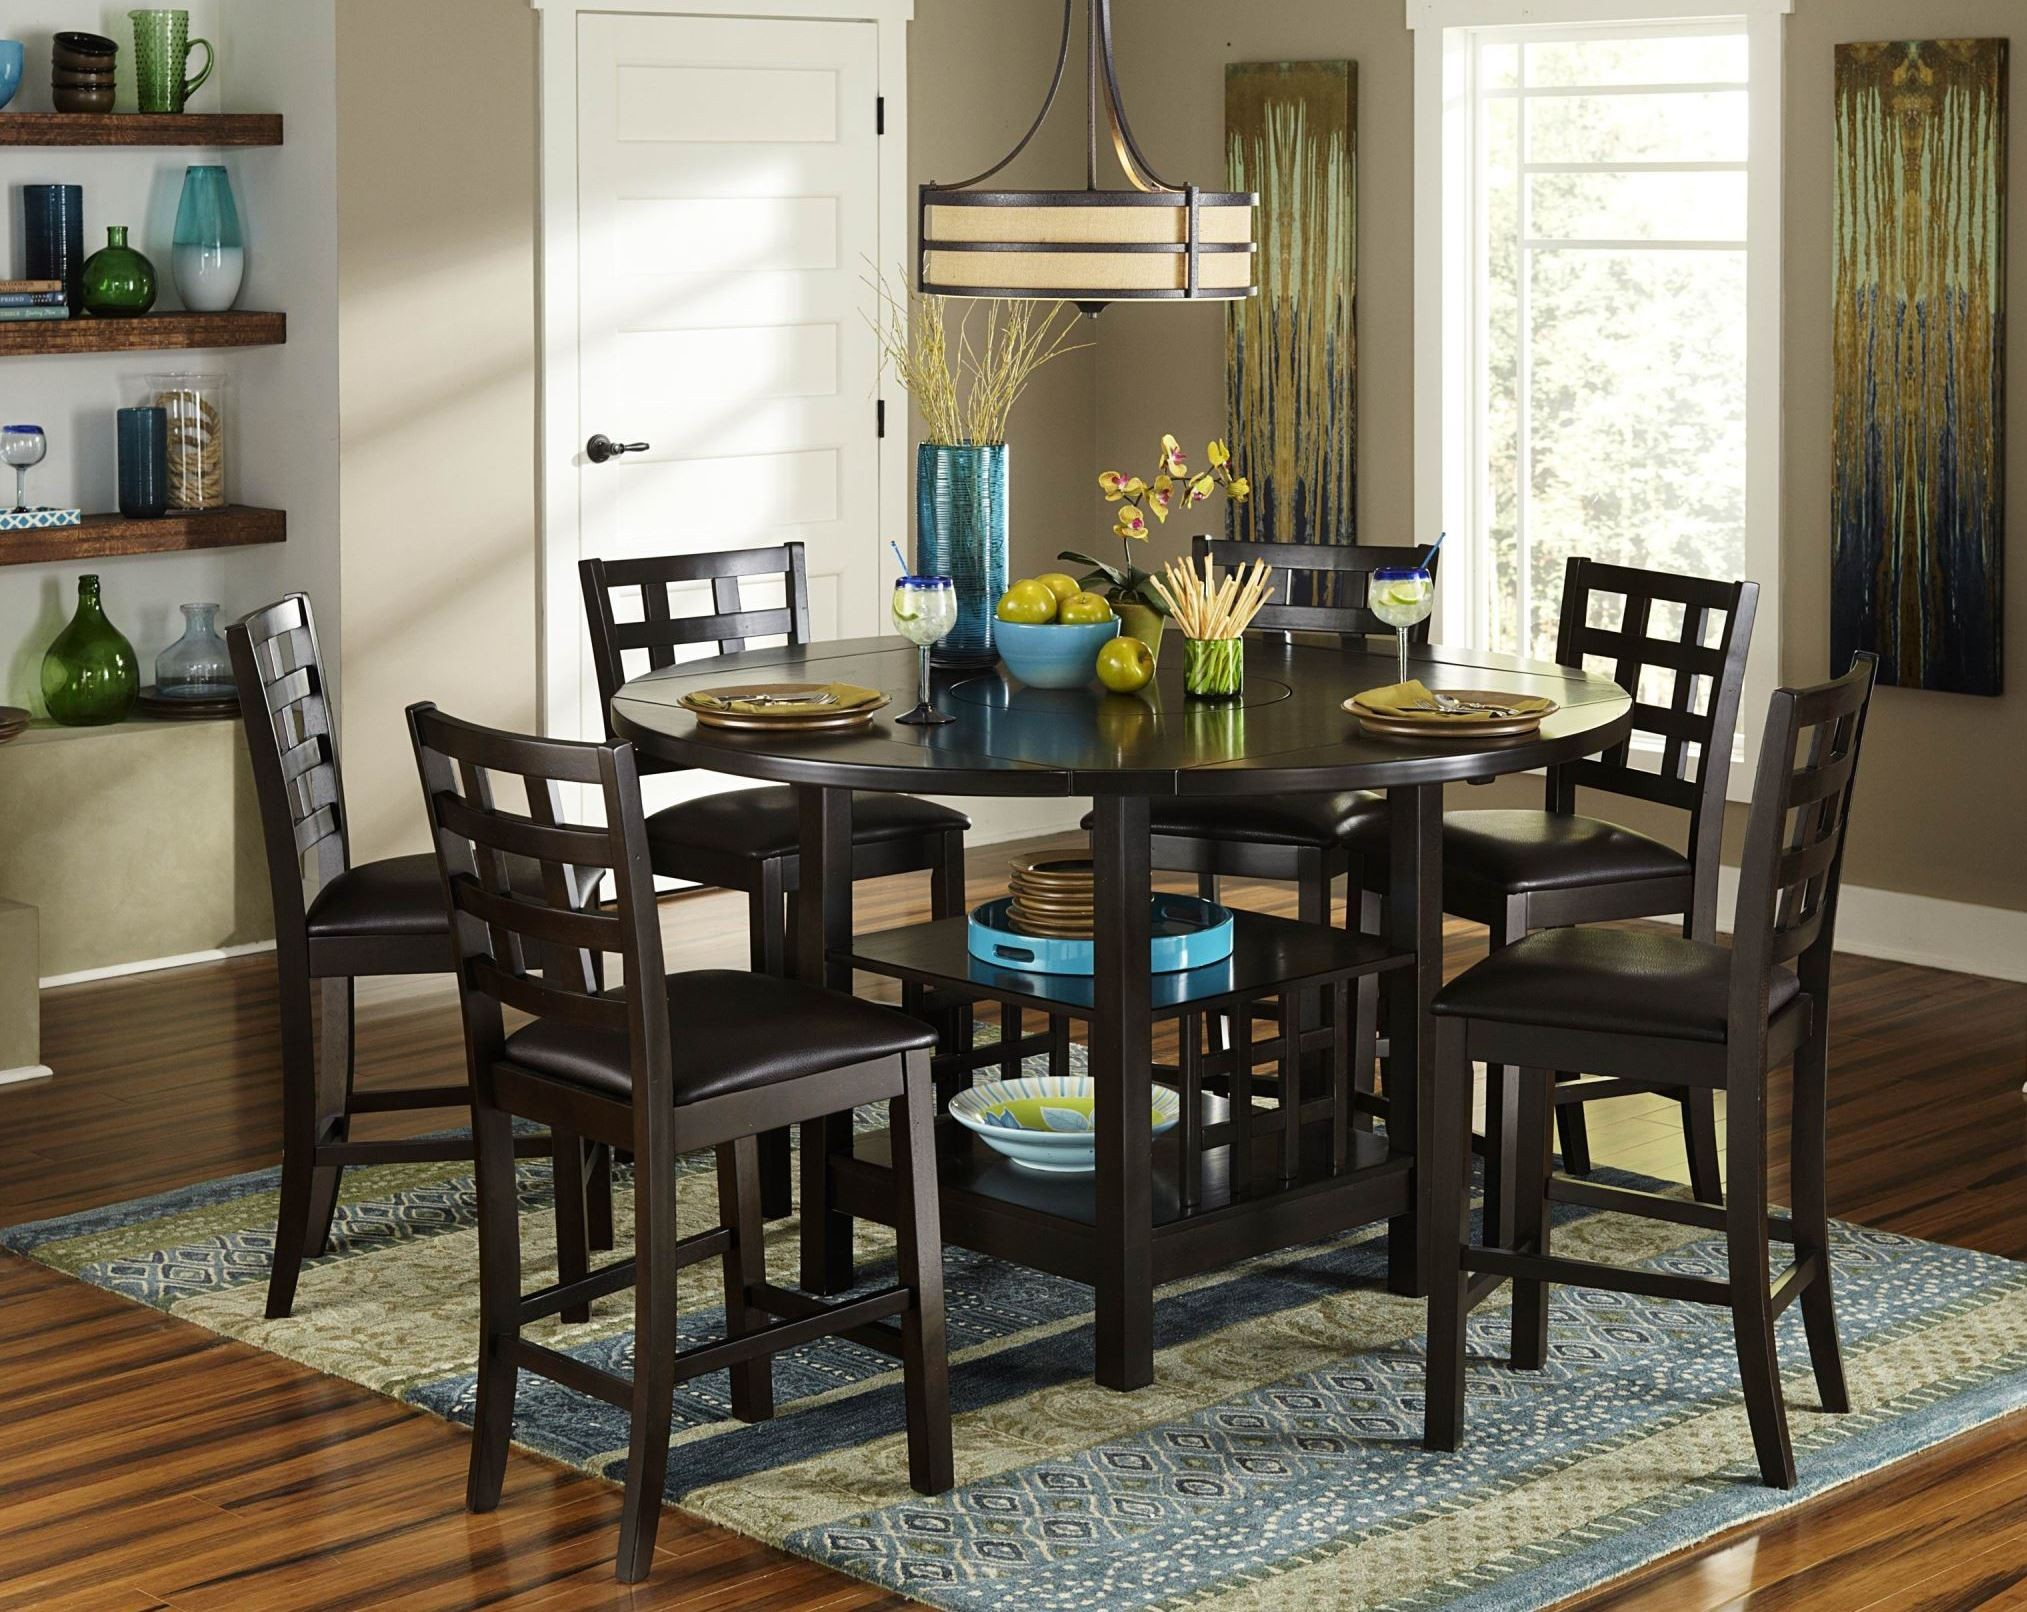 Glendine Lazy Susan Counter Height Dining Room Set from  : 2611 3692 from colemanfurniture.com size 2027 x 1612 jpeg 664kB